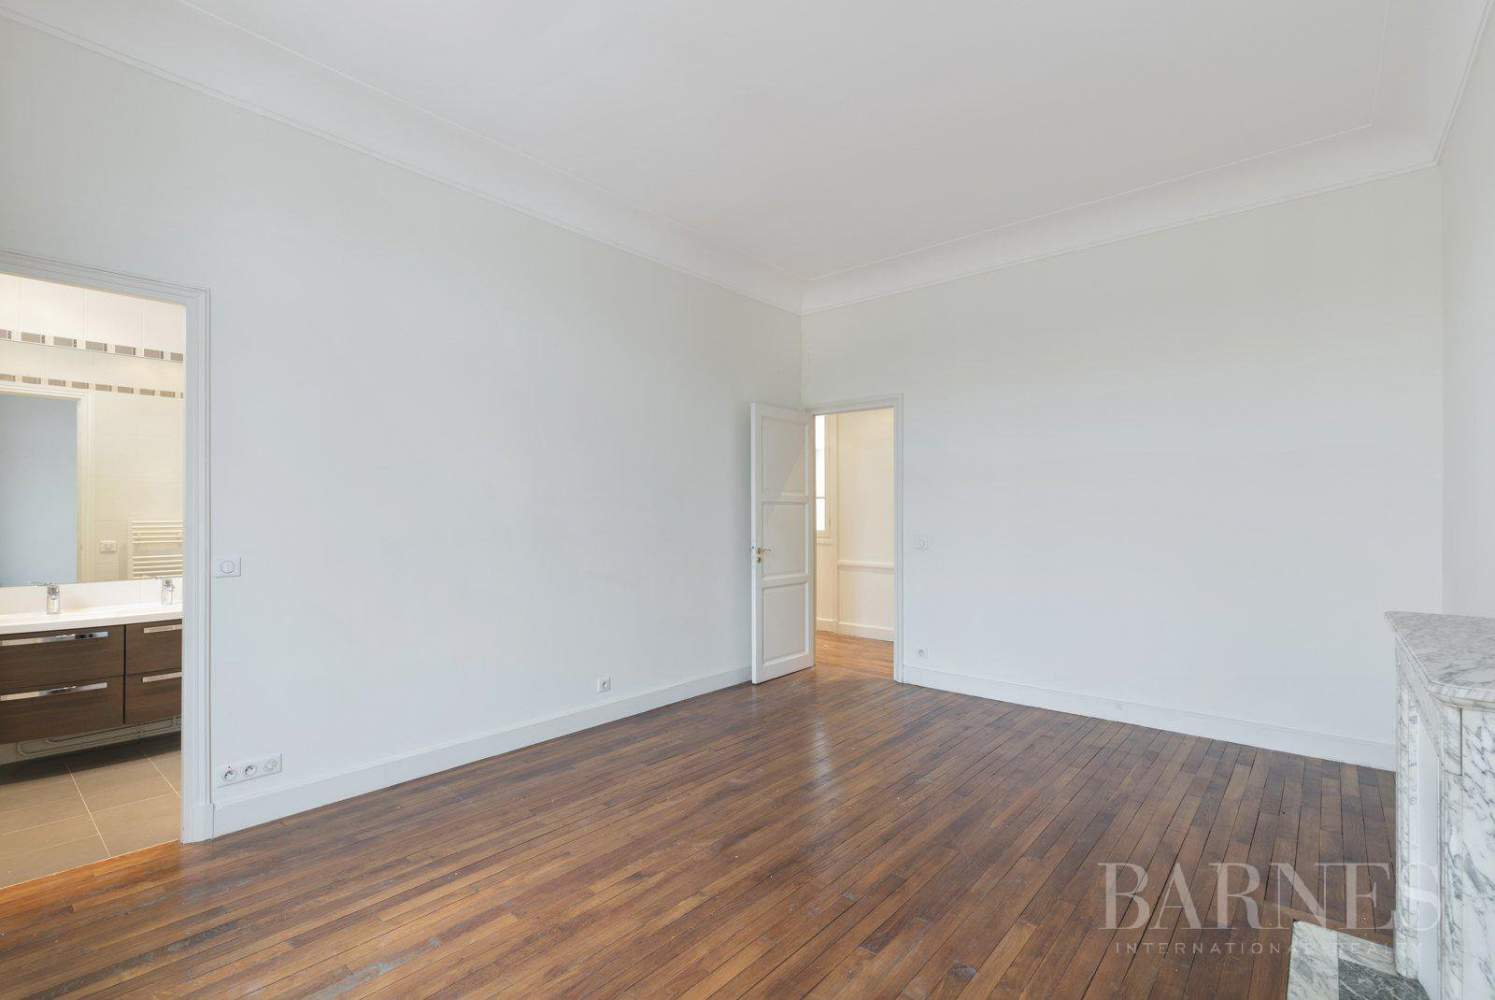 EXCLUSIVE - 8-ROOM APARTMENT FOR SALE - RENOVATED 1930s BUILDING - NEUILLY/PASTEUR picture 10